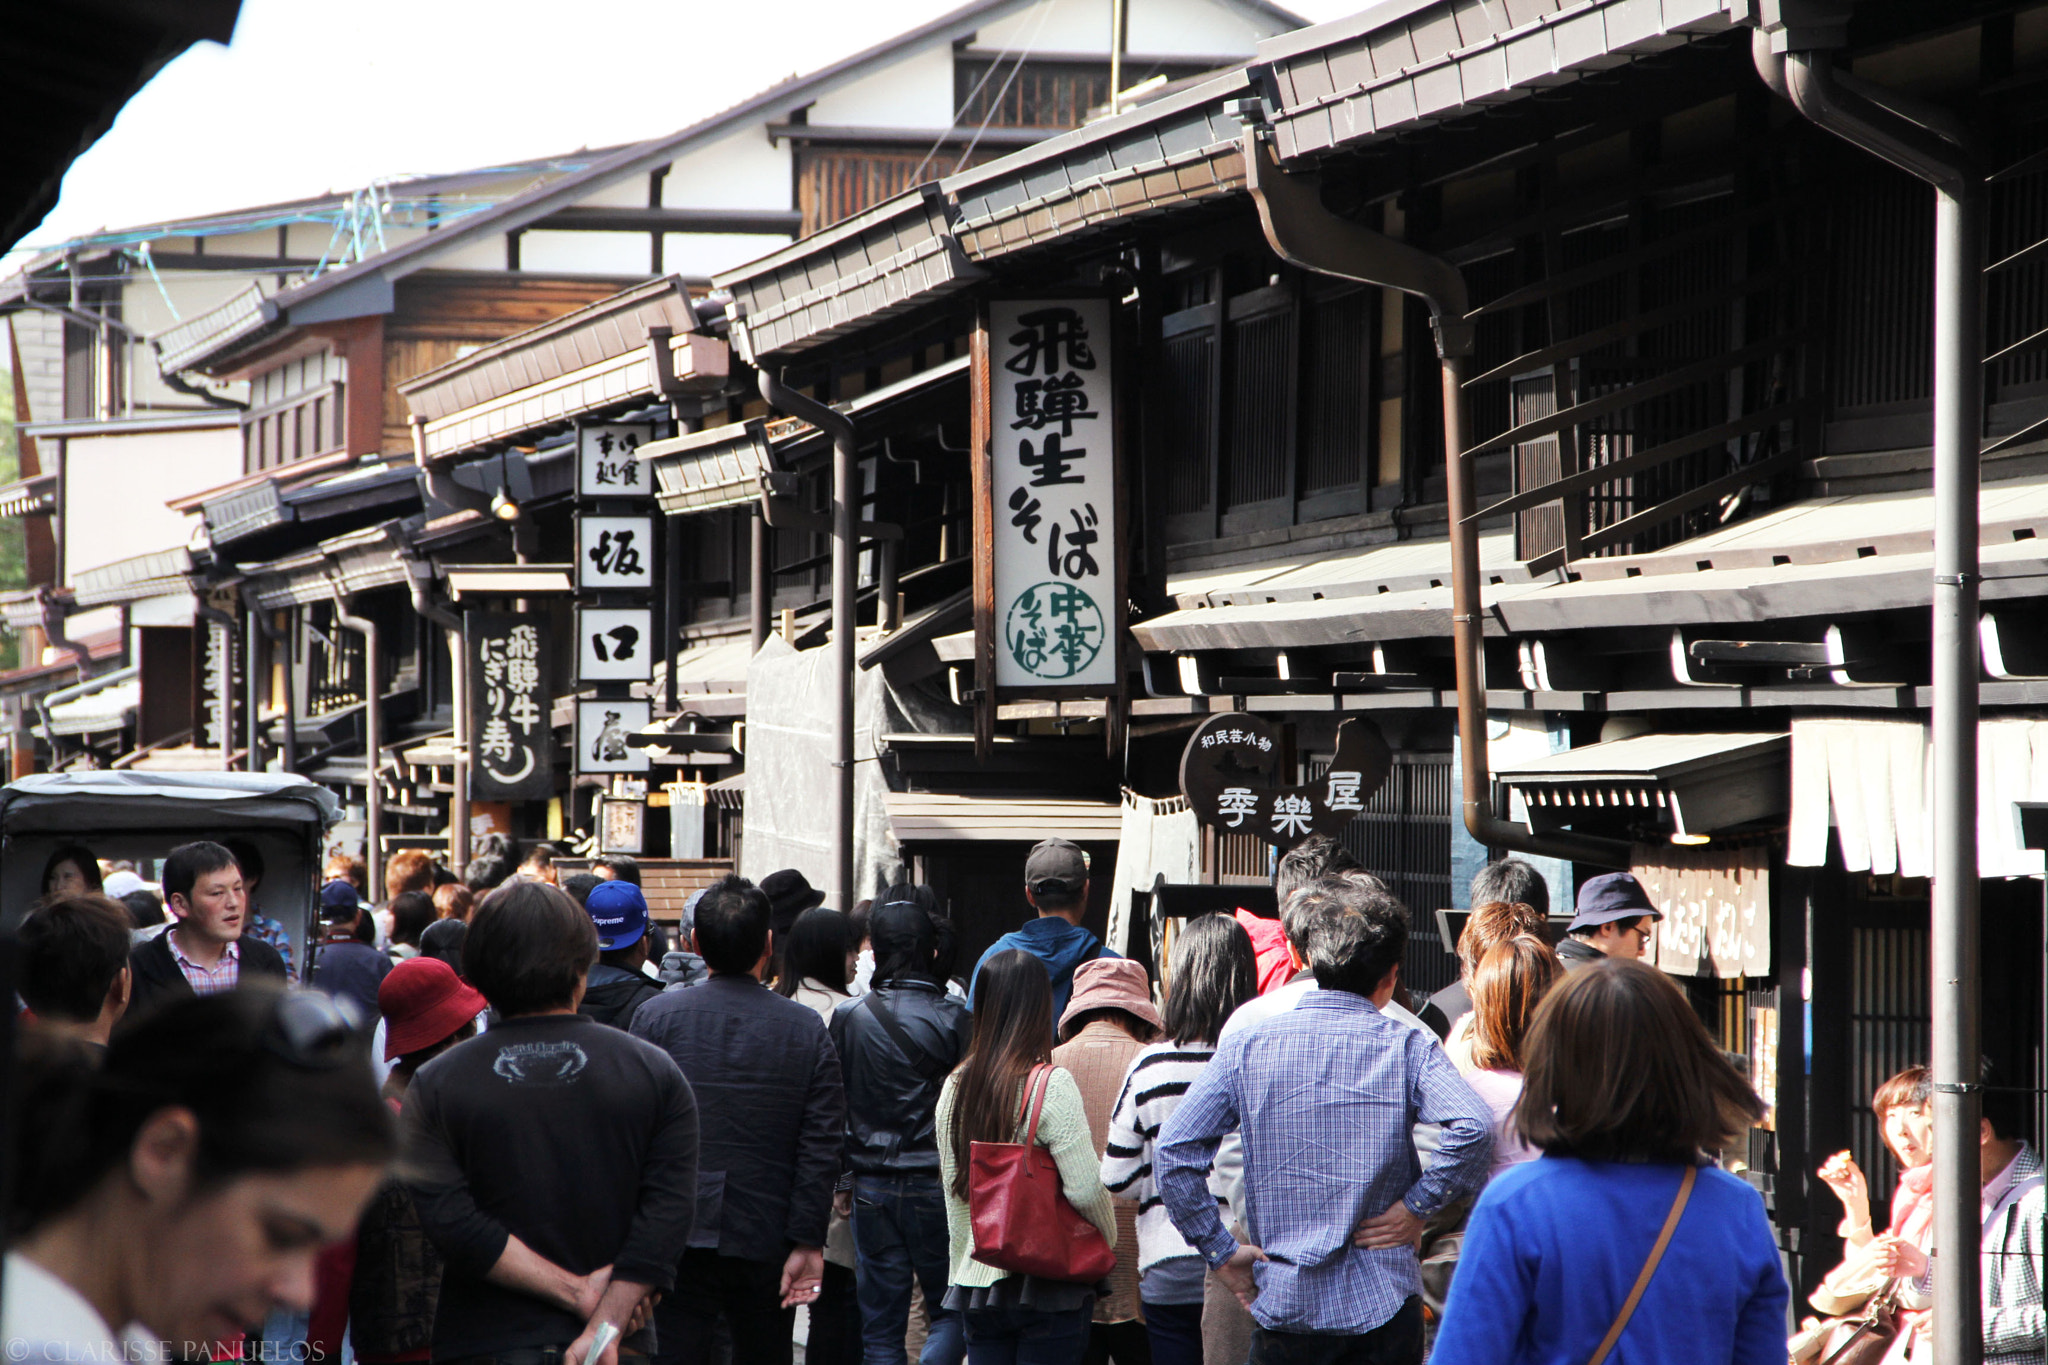 137b0fff2ba60a00227ba7526ab8d689 - Japan Travel Blog April 2015: Takayama Old Town